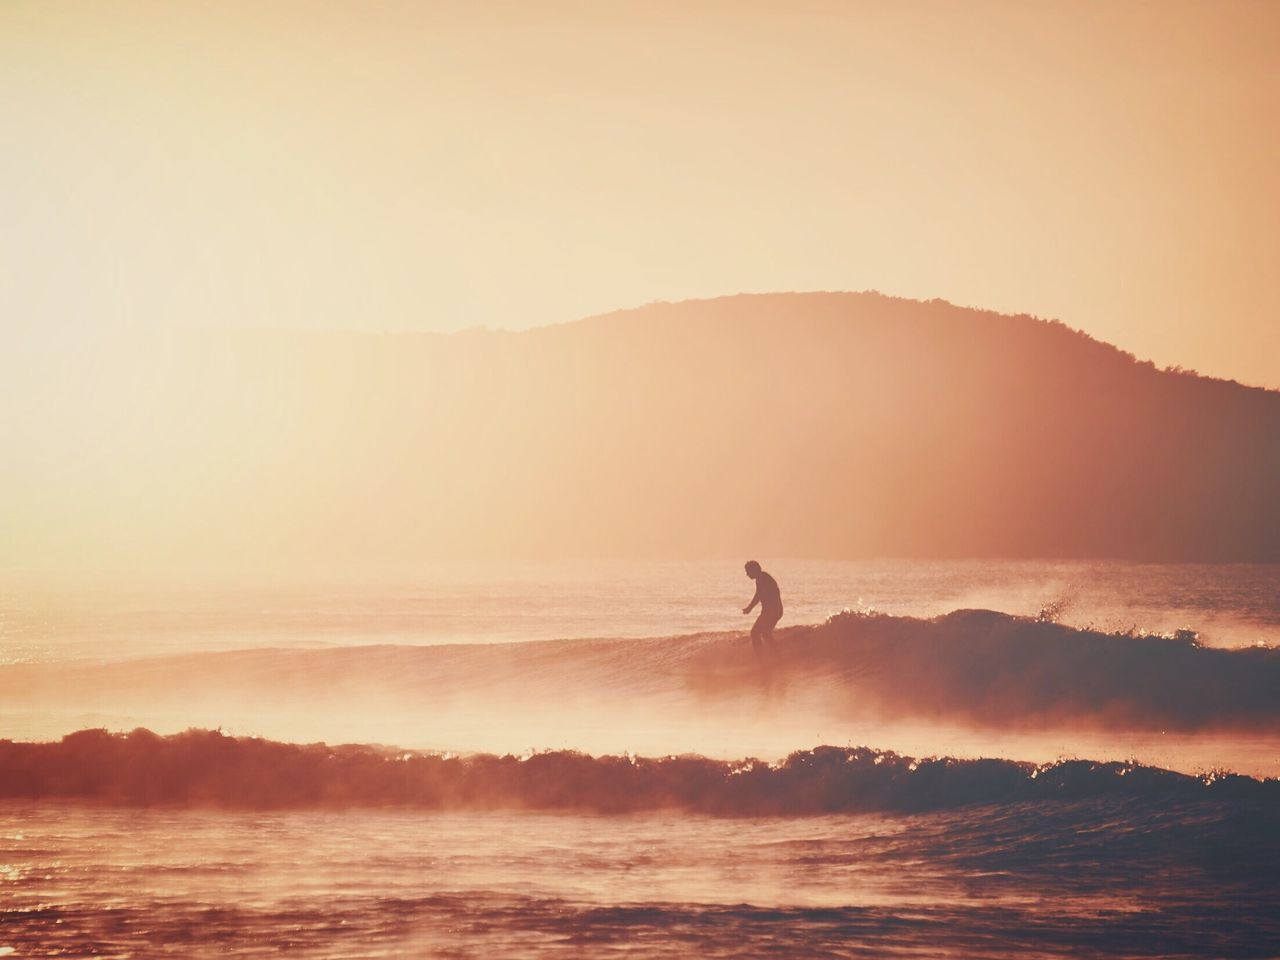 Real People Sunset Water Nature One Person Leisure Activity Beauty In Nature Silhouette Sea Outdoors Waterfront Men Scenics Standing Lifestyles Wave Extreme Sports Mountain Clear Sky Day Surfing Surfer Surf